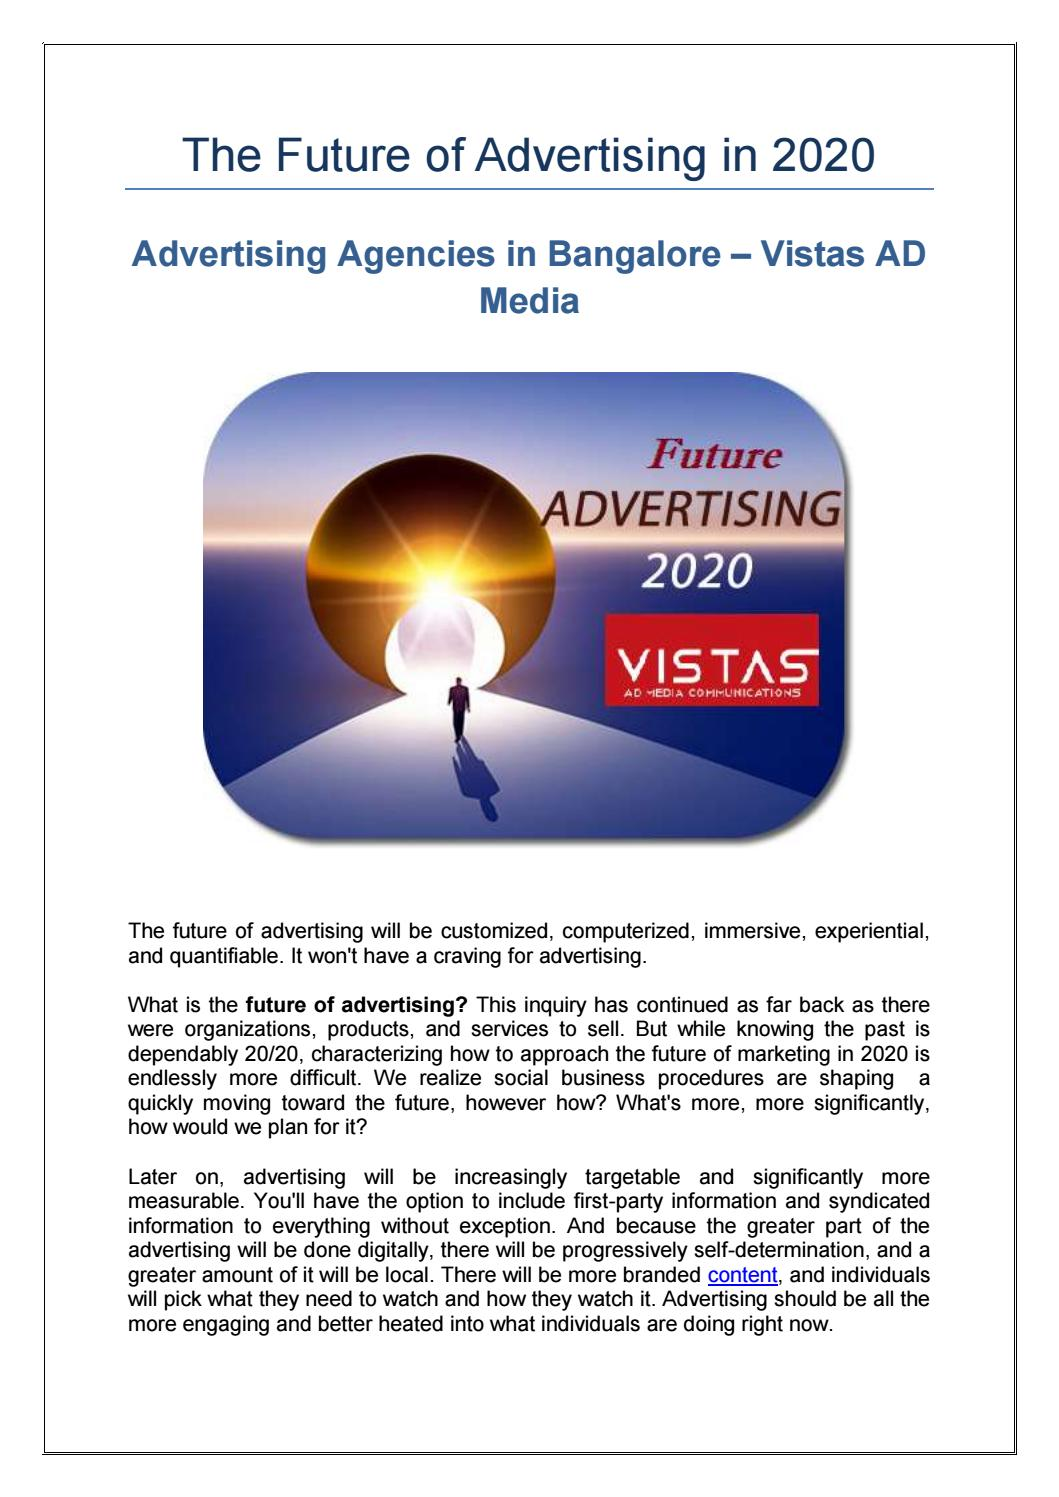 The Future of Advertising in 2020 by vistasadindia - issuu